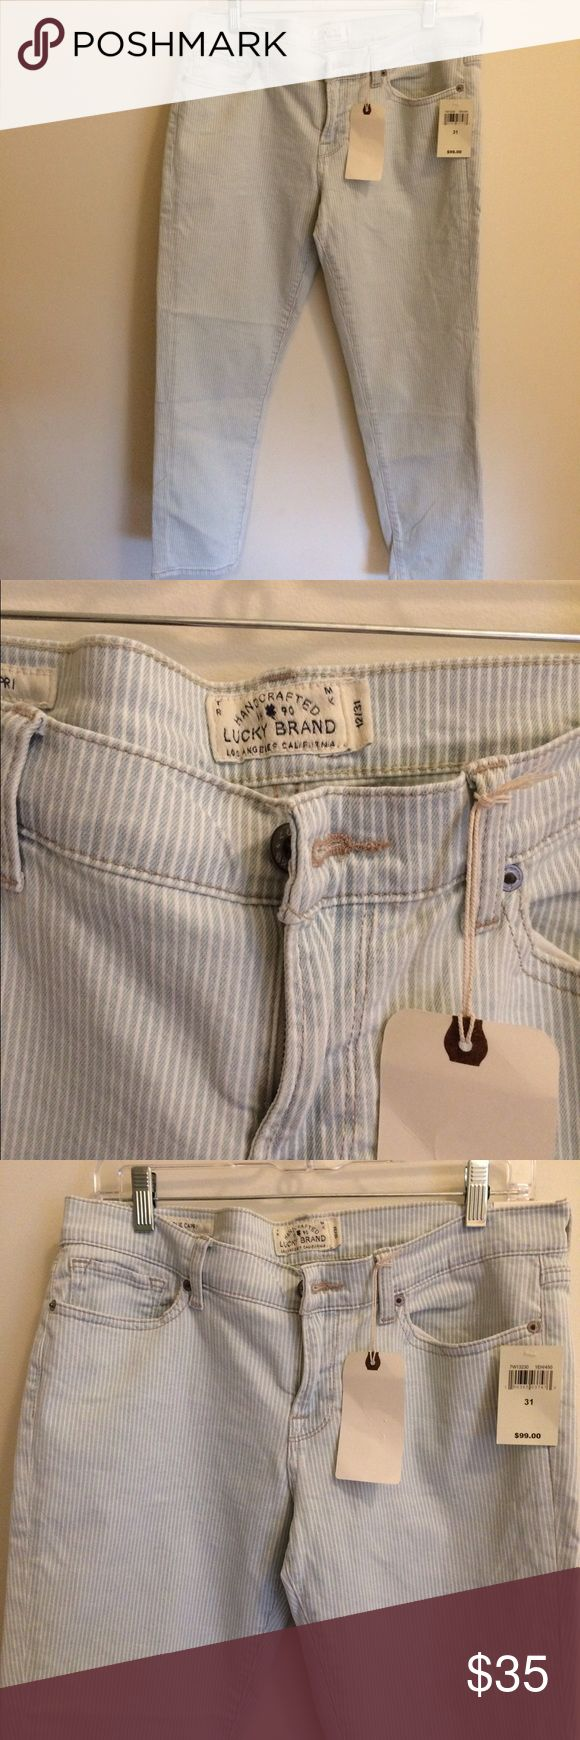 """Lucky Brand Women's Capri Denim Size 12/31"""" new Lucky Brand Women's Charlie capris. Size 12, 31"""" waist. Inseam is 25"""". Low rise. Cotton/poly/spandex blend. Light blue and white stripes. Brand new with tags Lucky Brand Jeans Ankle & Cropped"""